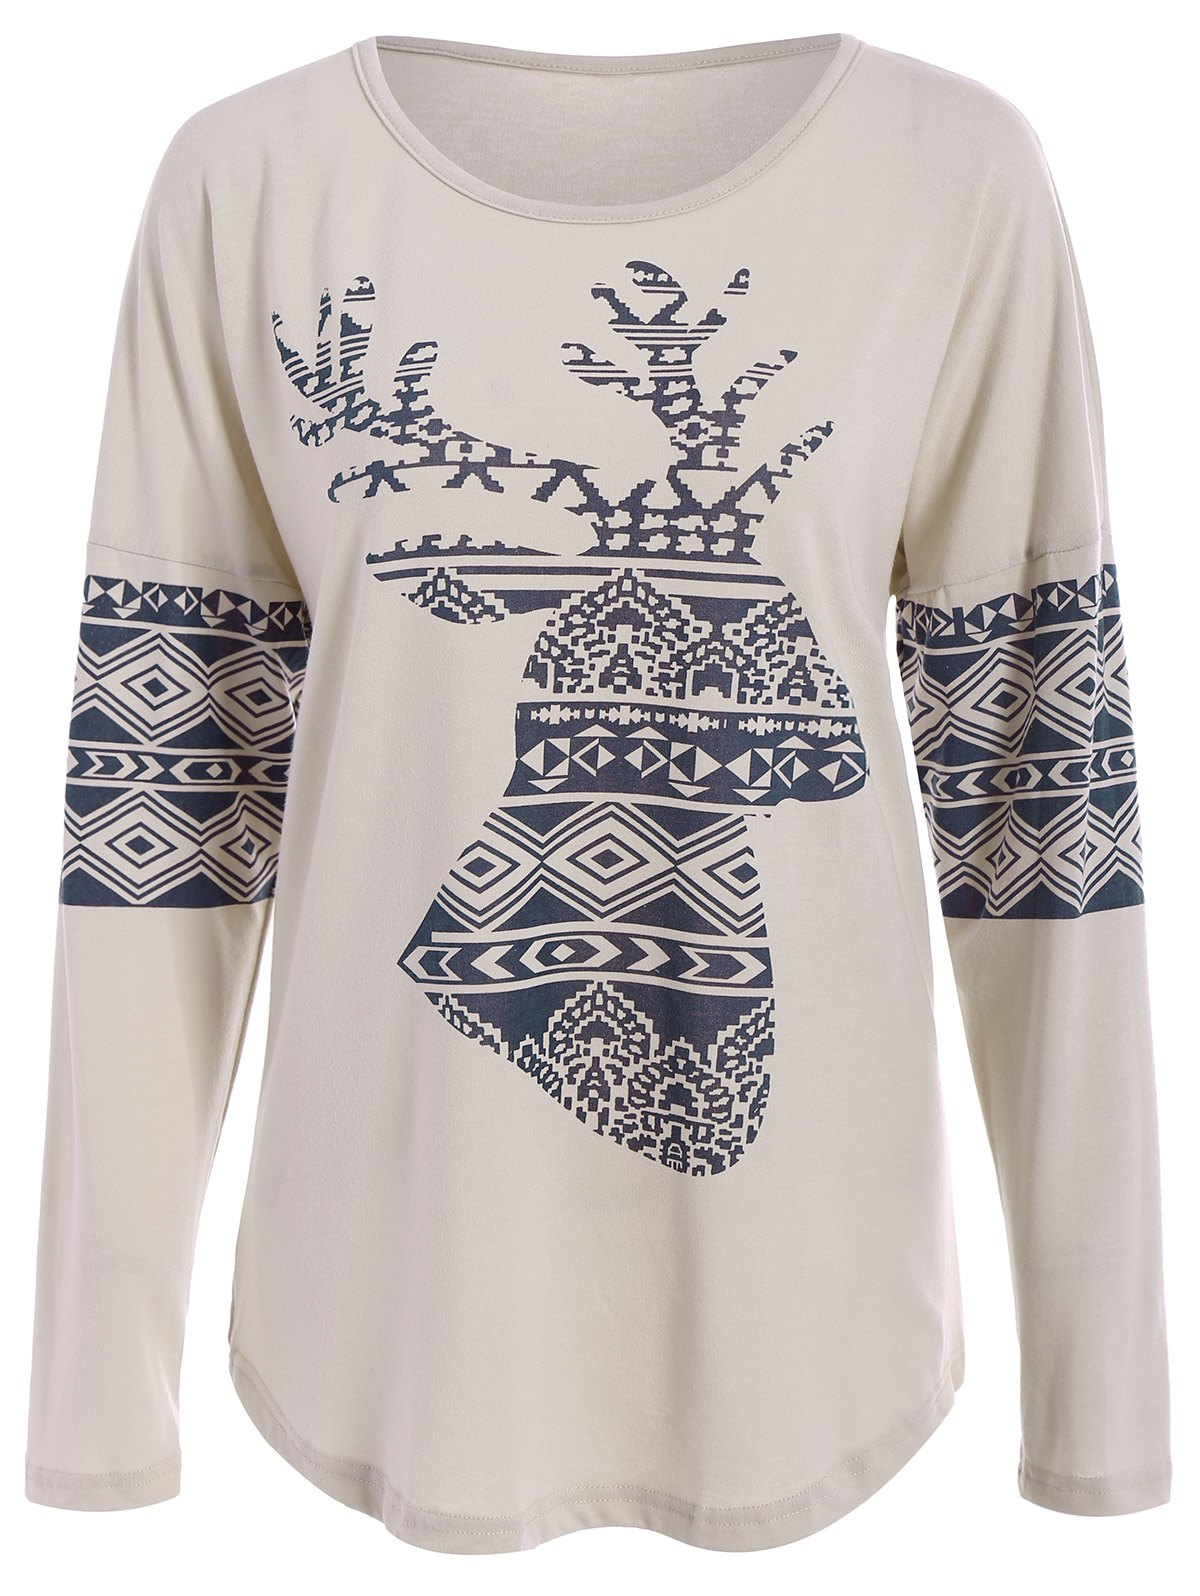 Casual Scoop Neck Long Sleeve Elk Printed Christmas T-Shirt For WomenWOMEN<br><br>Size: L; Color: APRICOT; Material: Polyester; Sleeve Length: Full; Collar: Scoop Neck; Style: Fashion; Pattern Type: Print; Season: Fall,Winter; Weight: 0.230KG; Package Contents: 1 x T-Shirt;